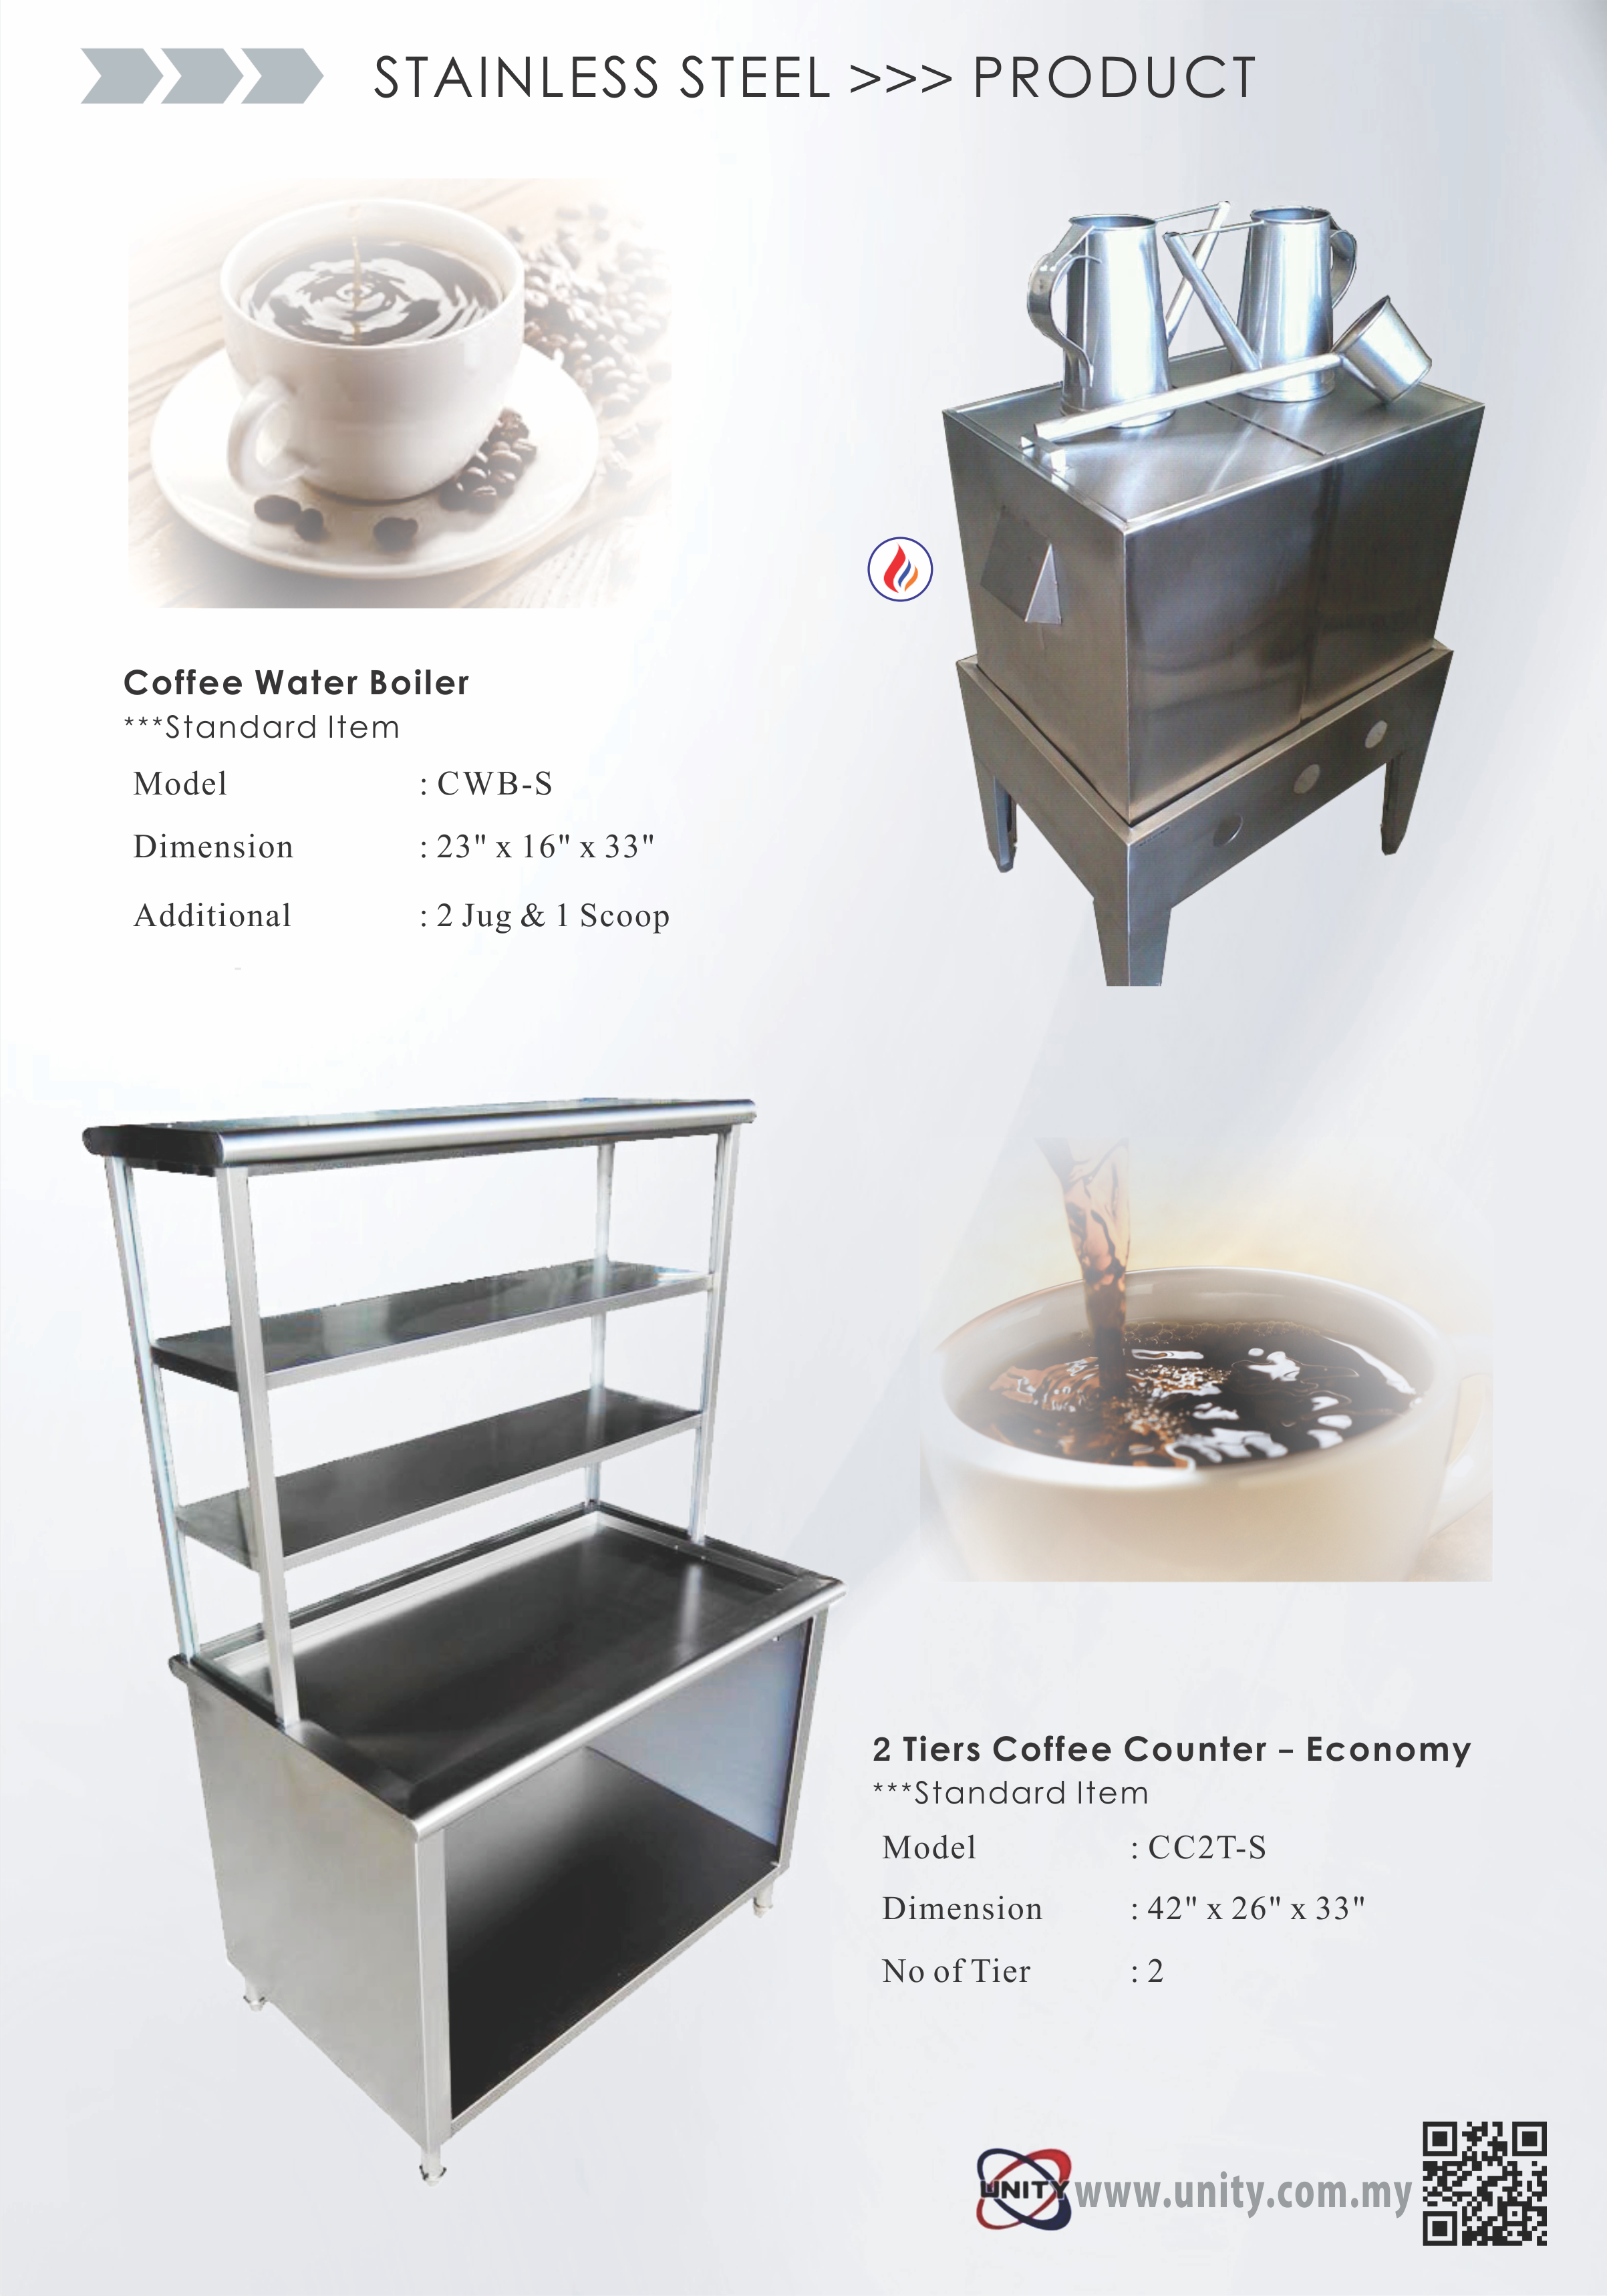 Coffee Water Boiler & Coffee Counter (Eco)